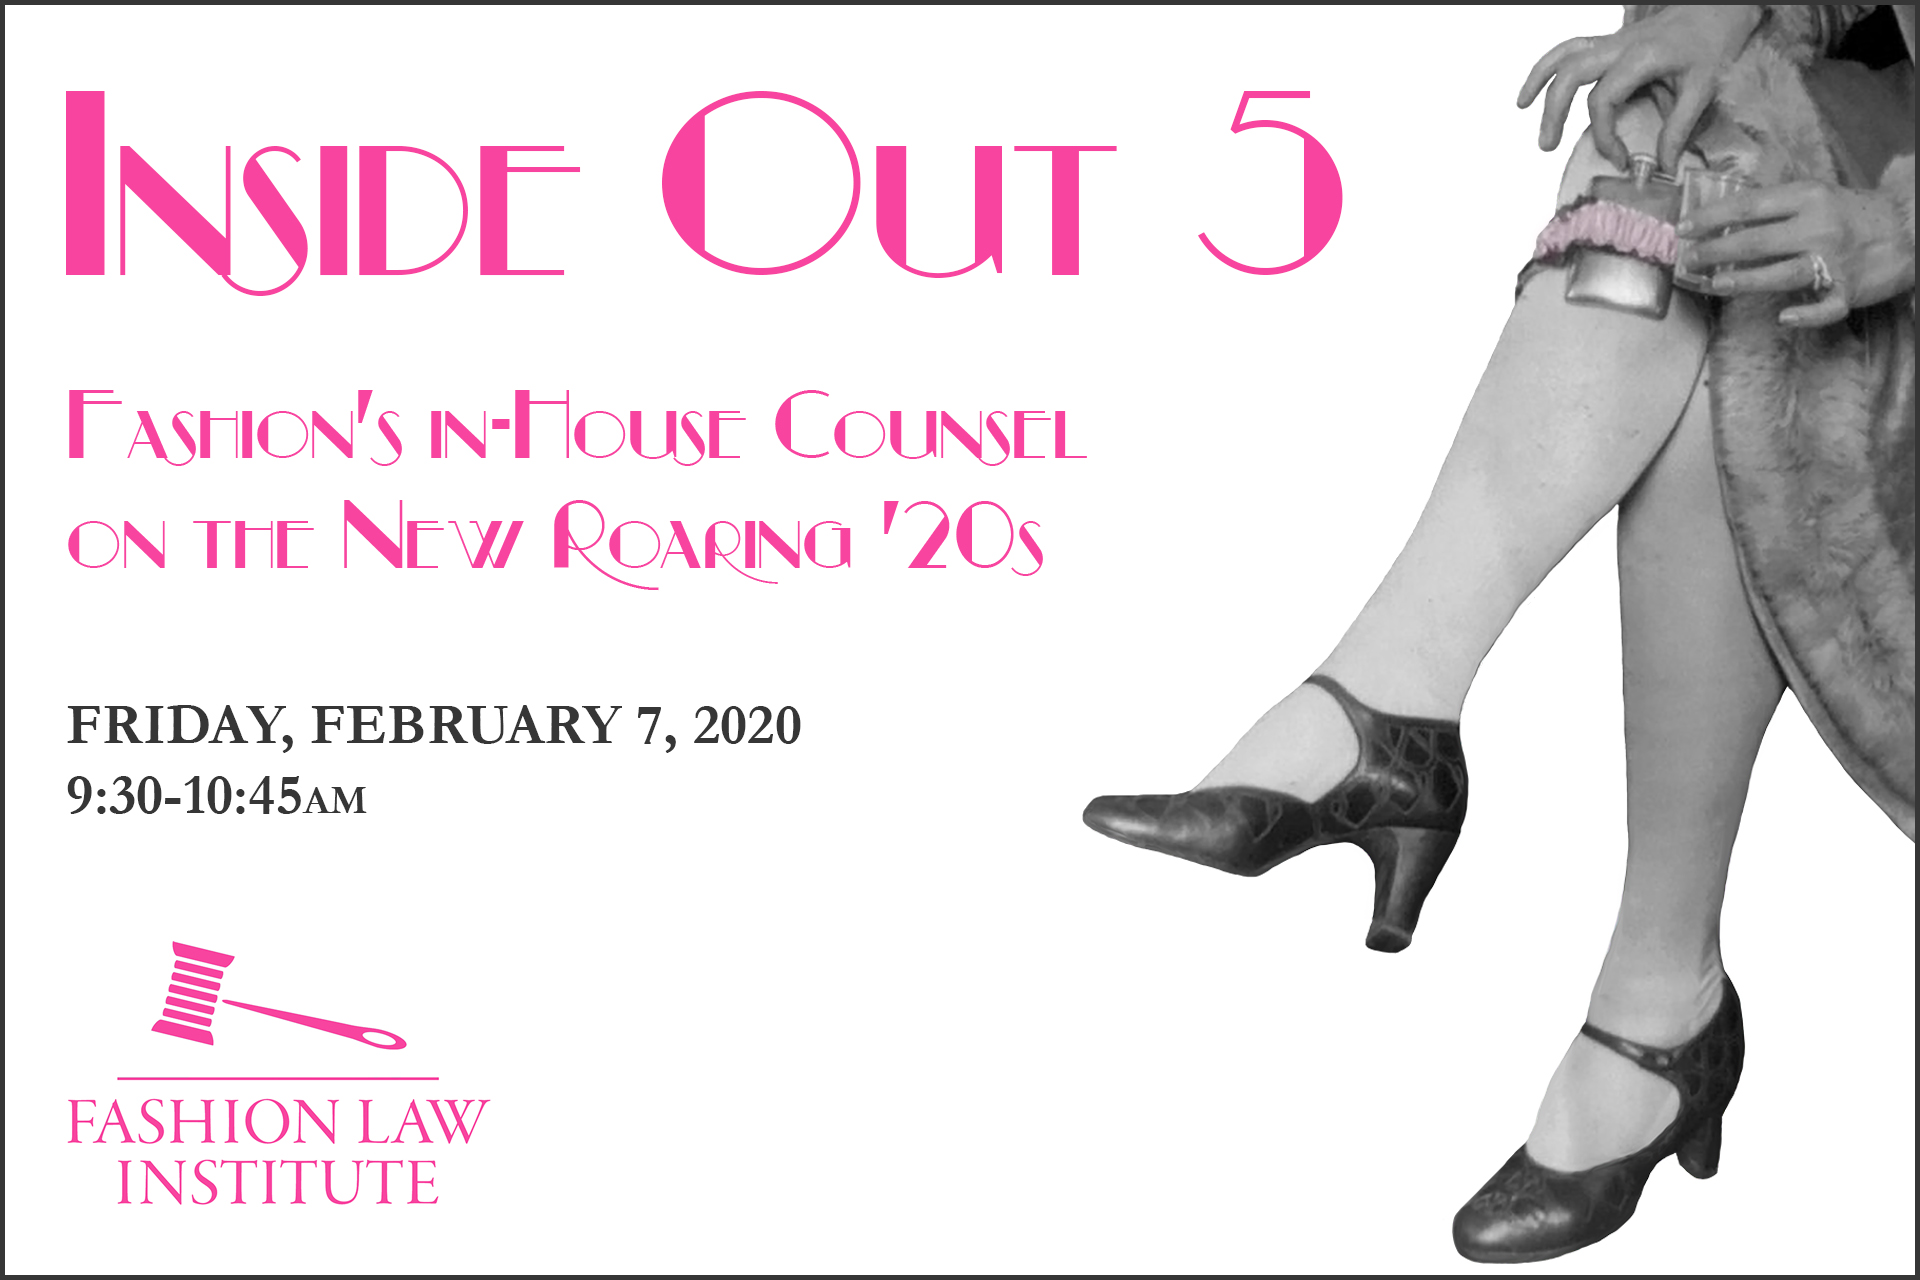 Event announcement for Inside Out 5: Fashion's In-House Counsel on the New Roaring '20s, on Friday, February 7, 9:30-10:45am. Black and white image of a Prohibition-era woman's legs with a flask tucked in a garter.